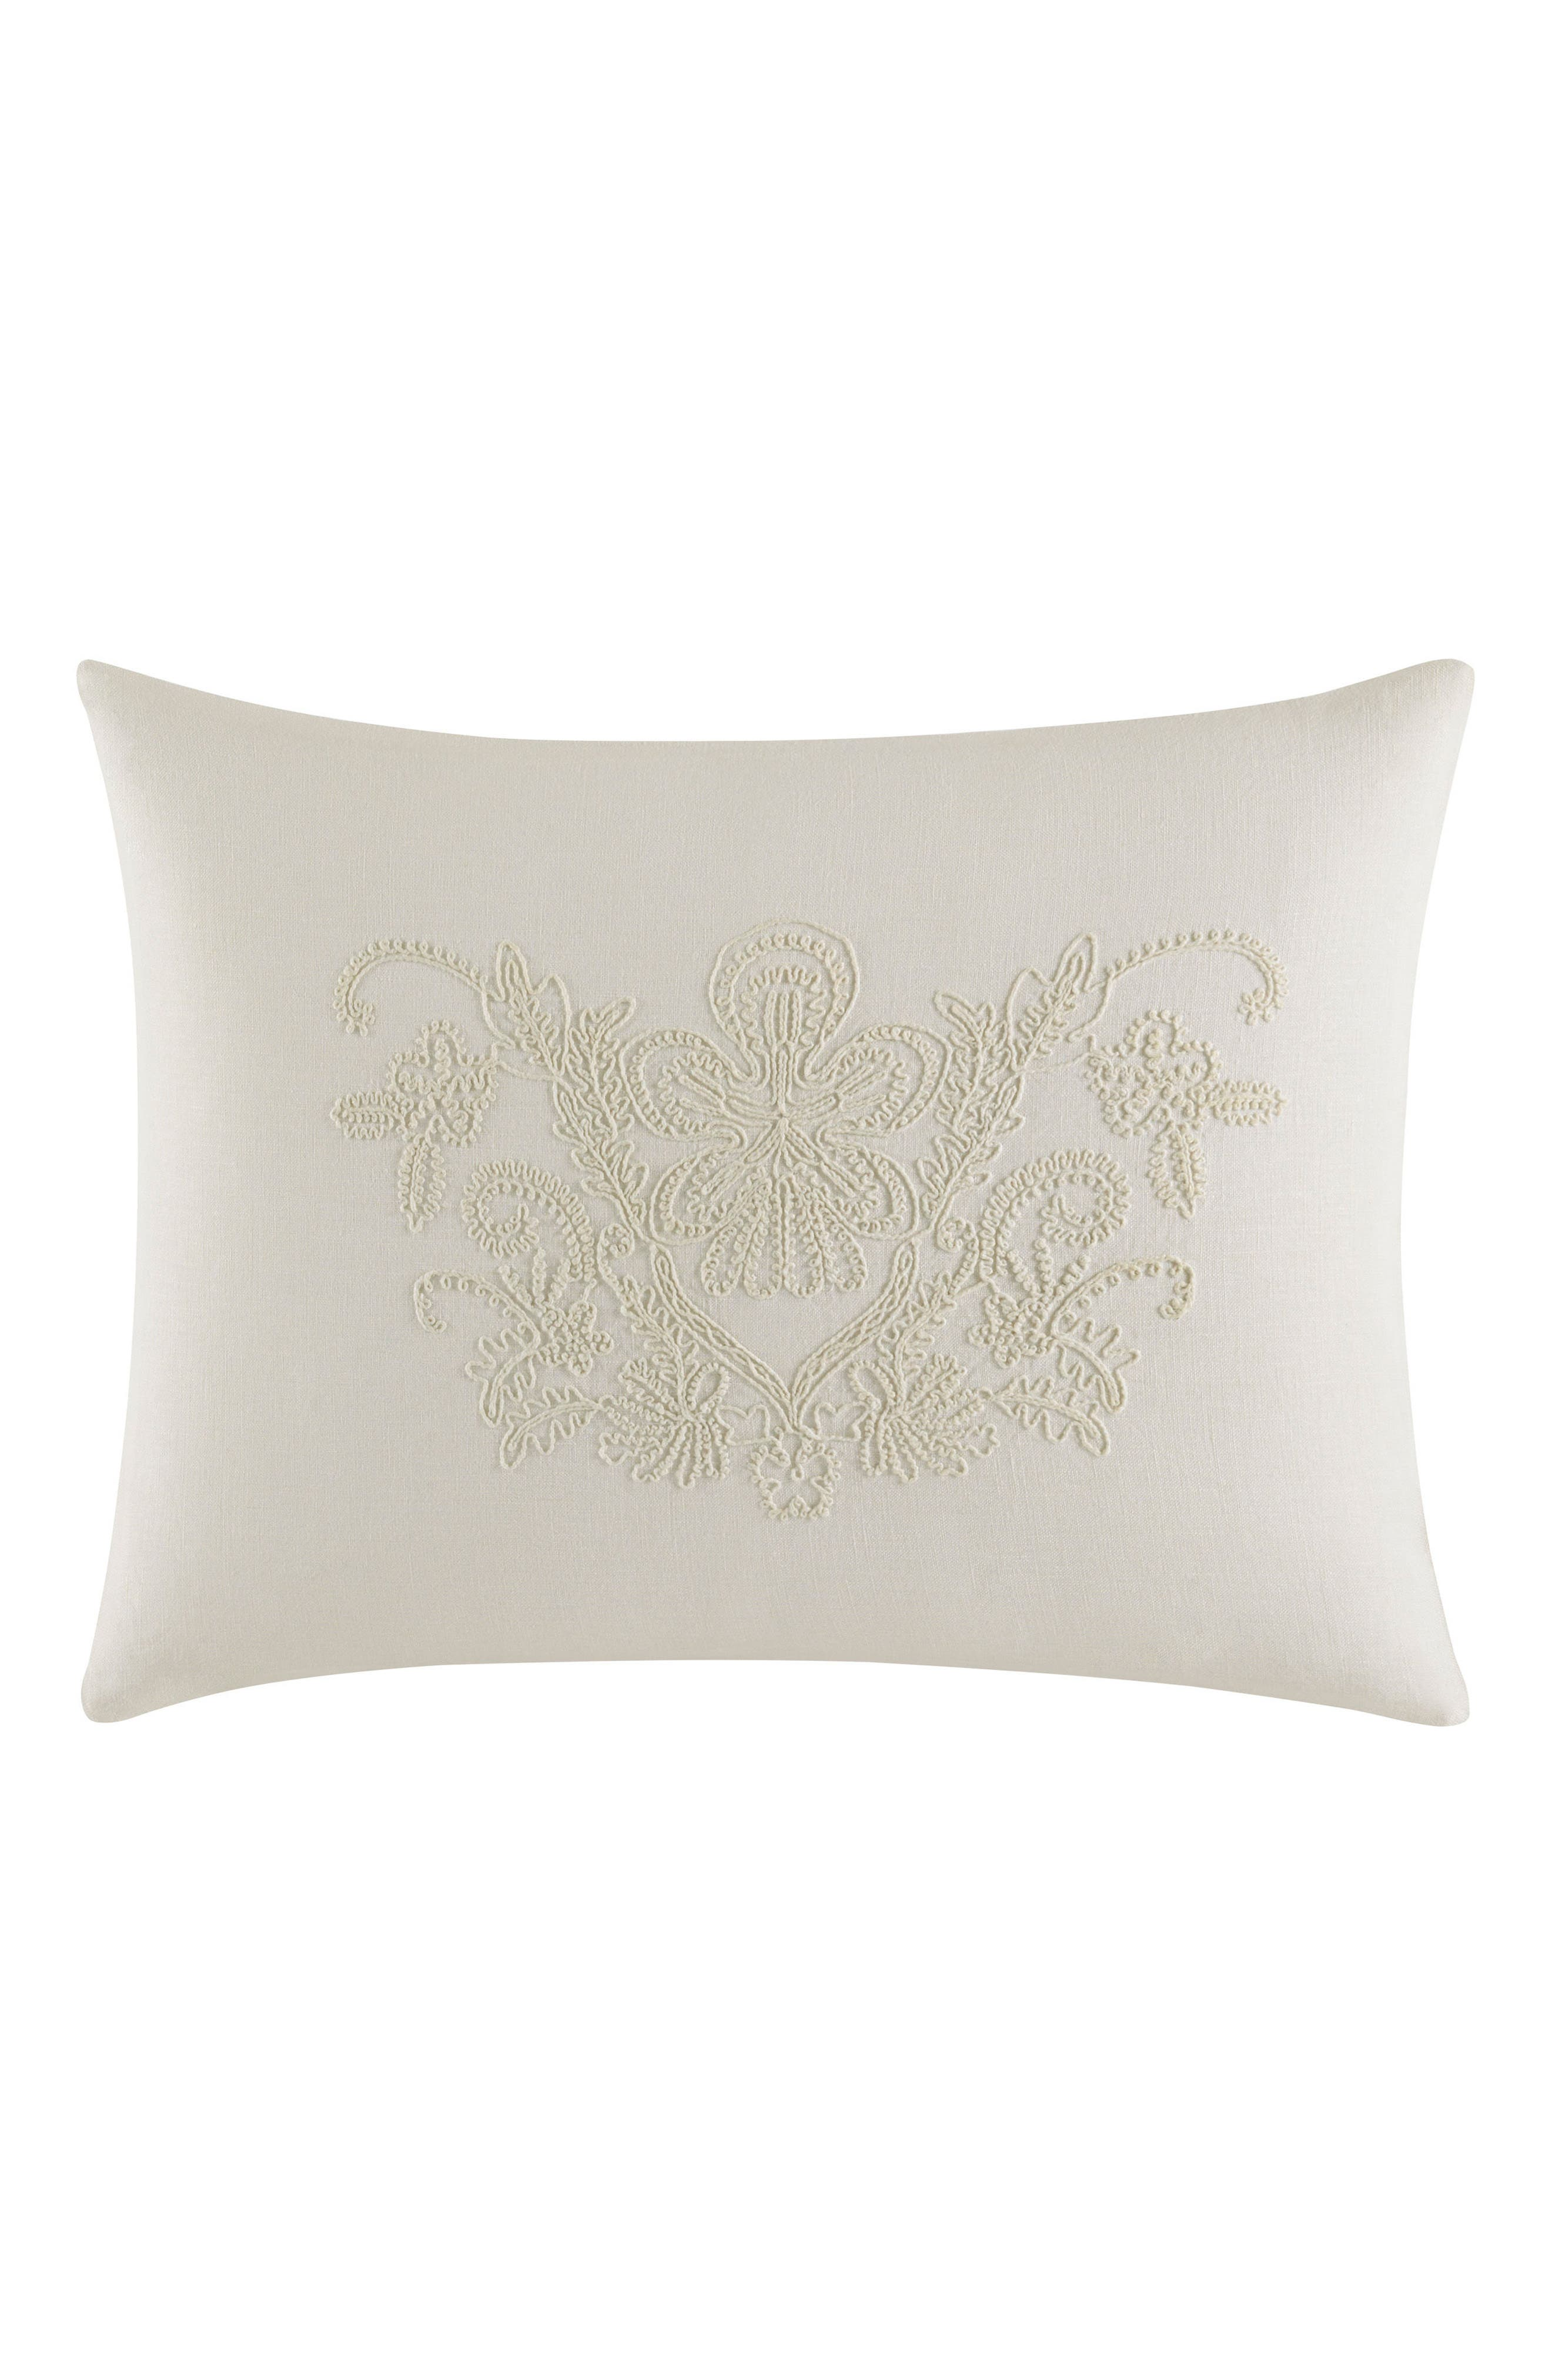 Alternate Image 1 Selected - Vera Wang Passementerie Breakfast Linen Accent Pillow